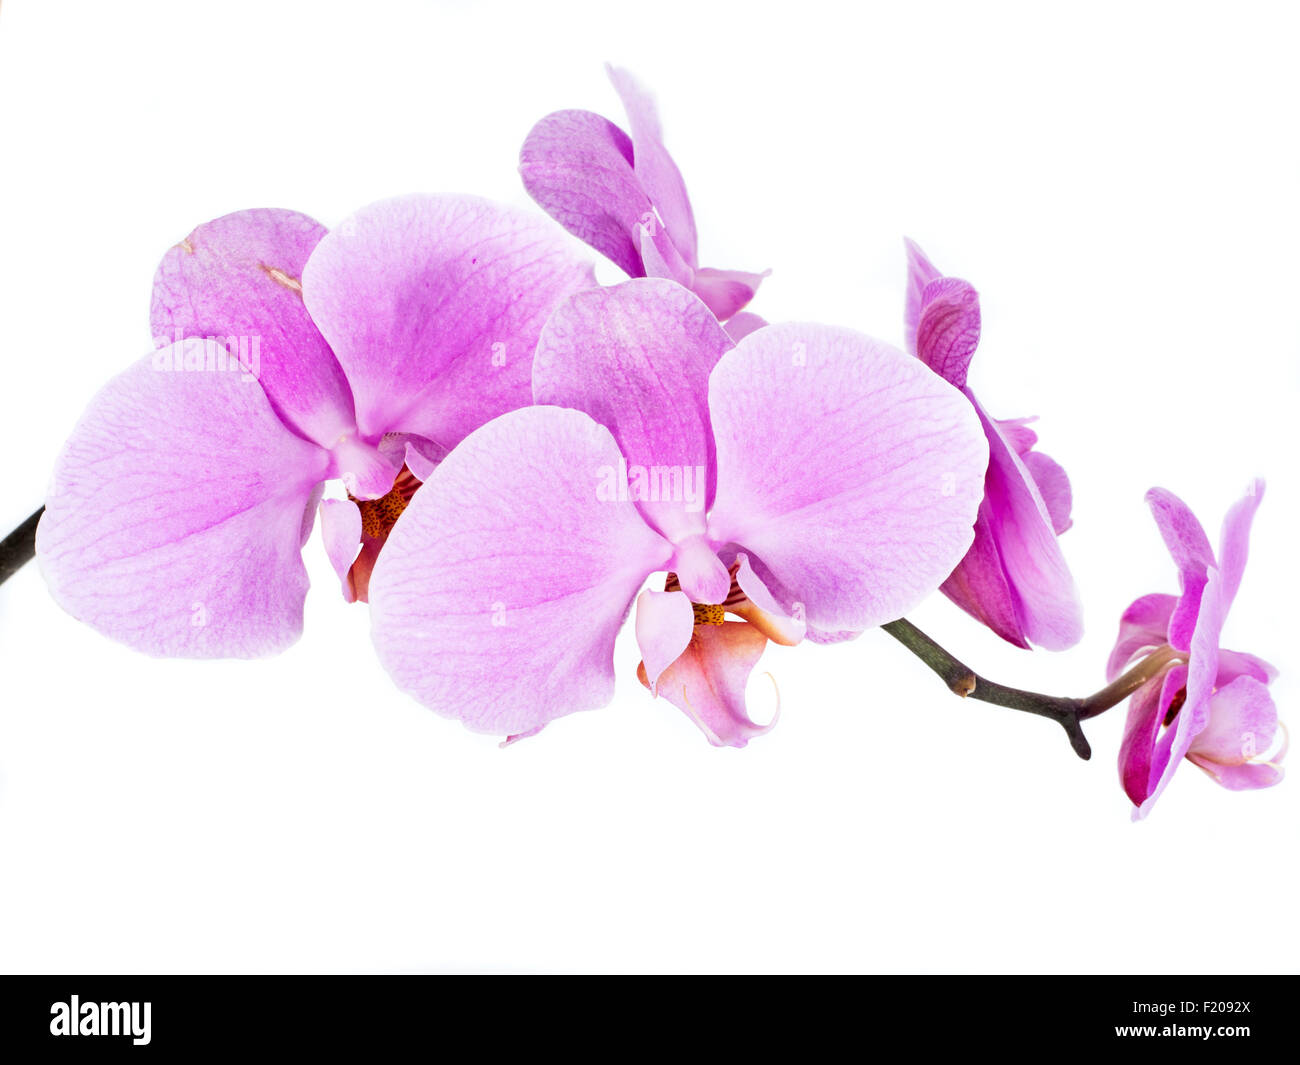 Orchidee - Stock Image